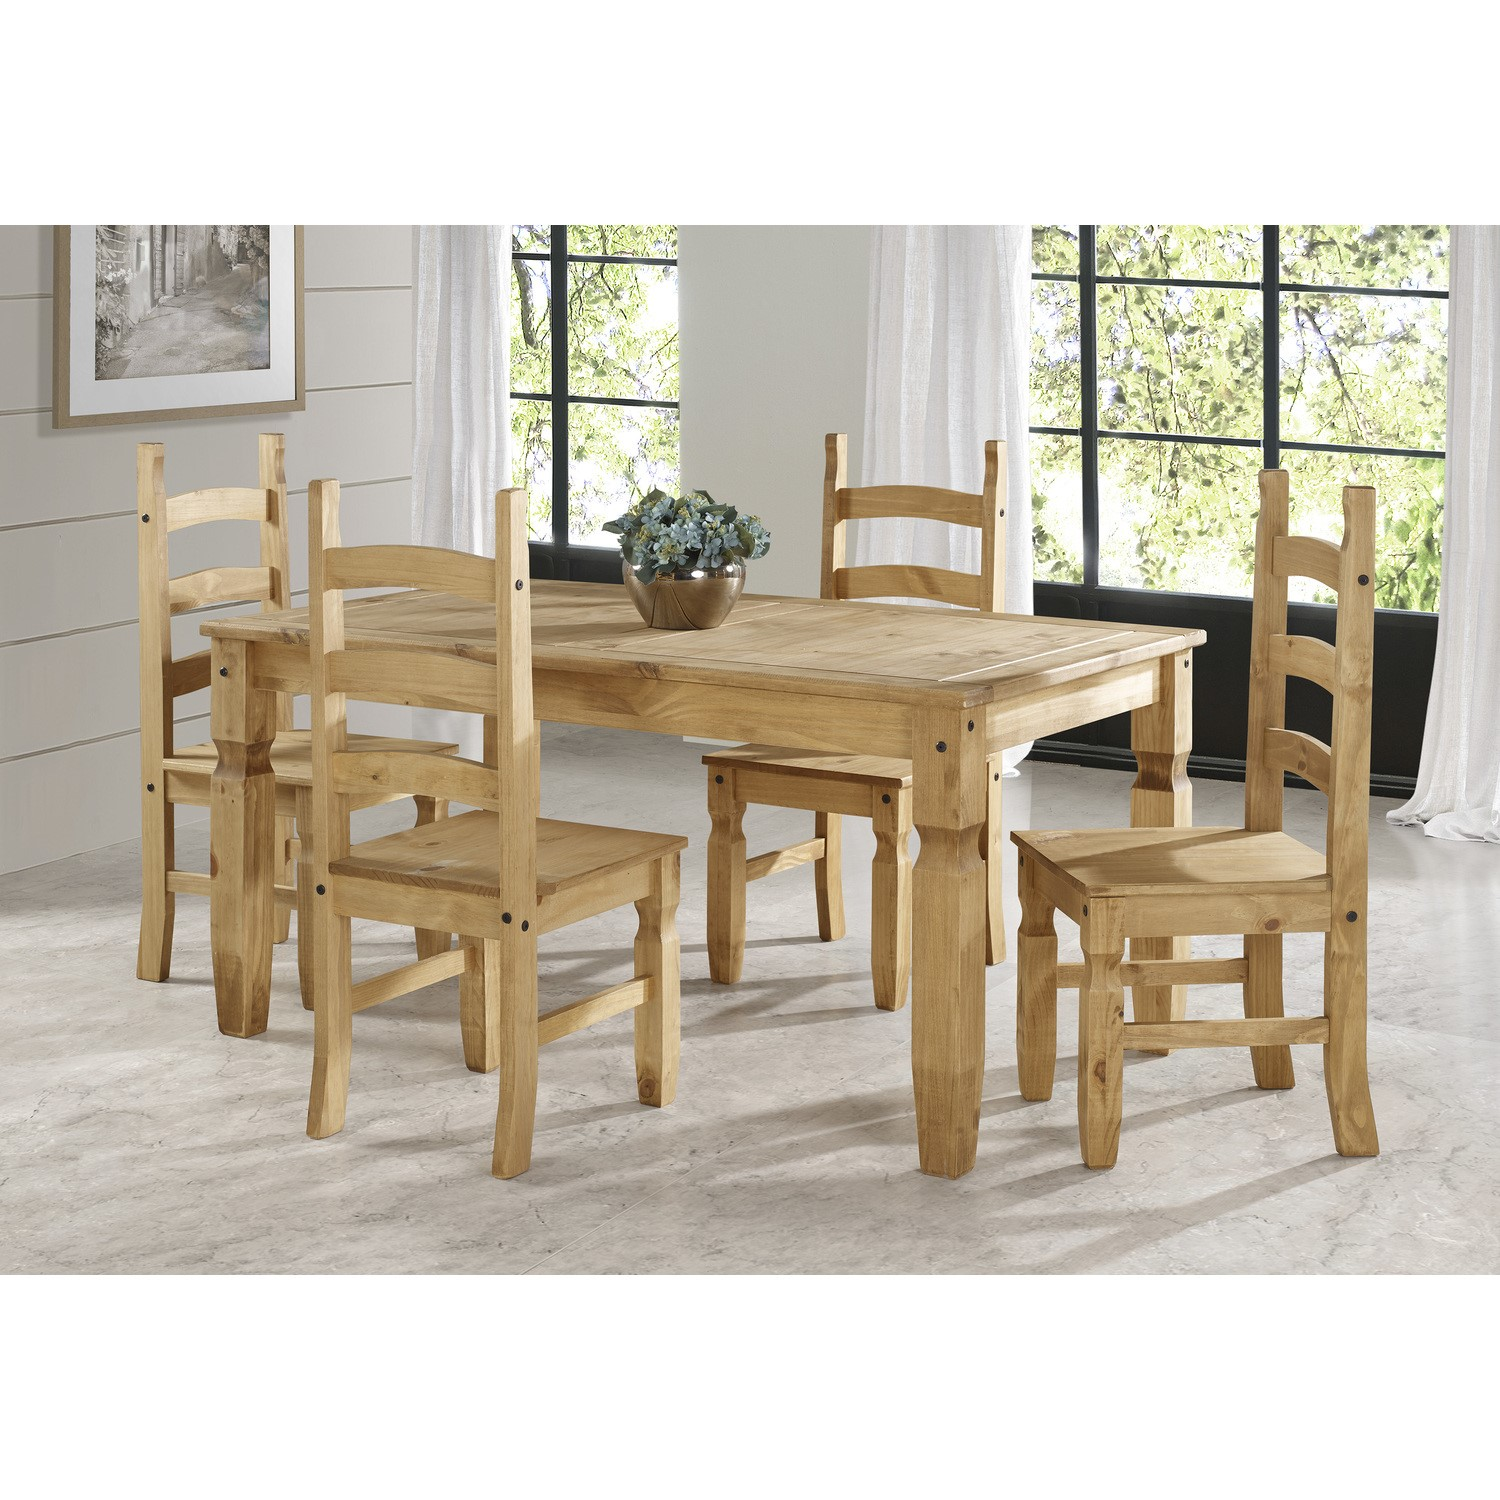 Merveilleux Corona Solid Pine Dining Set With 4 Chairs